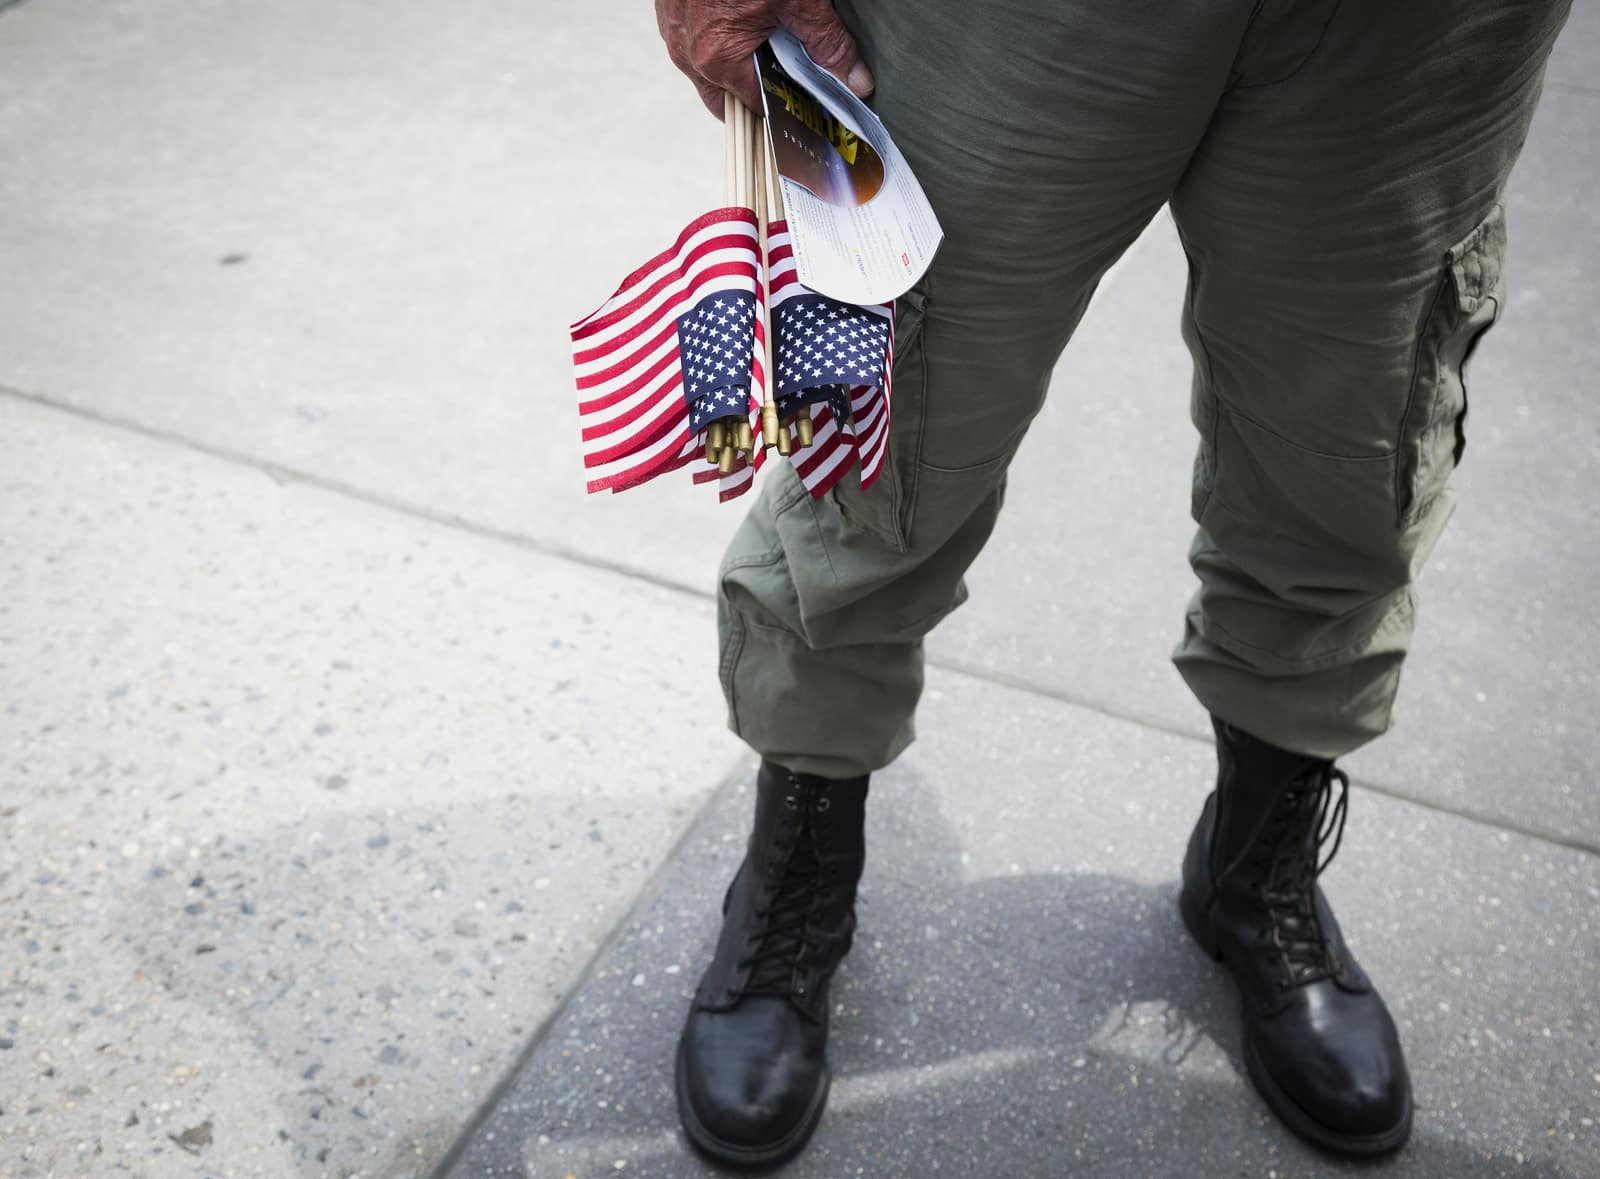 Louisiana Guide: How to Honor Veterans This Memorial Day